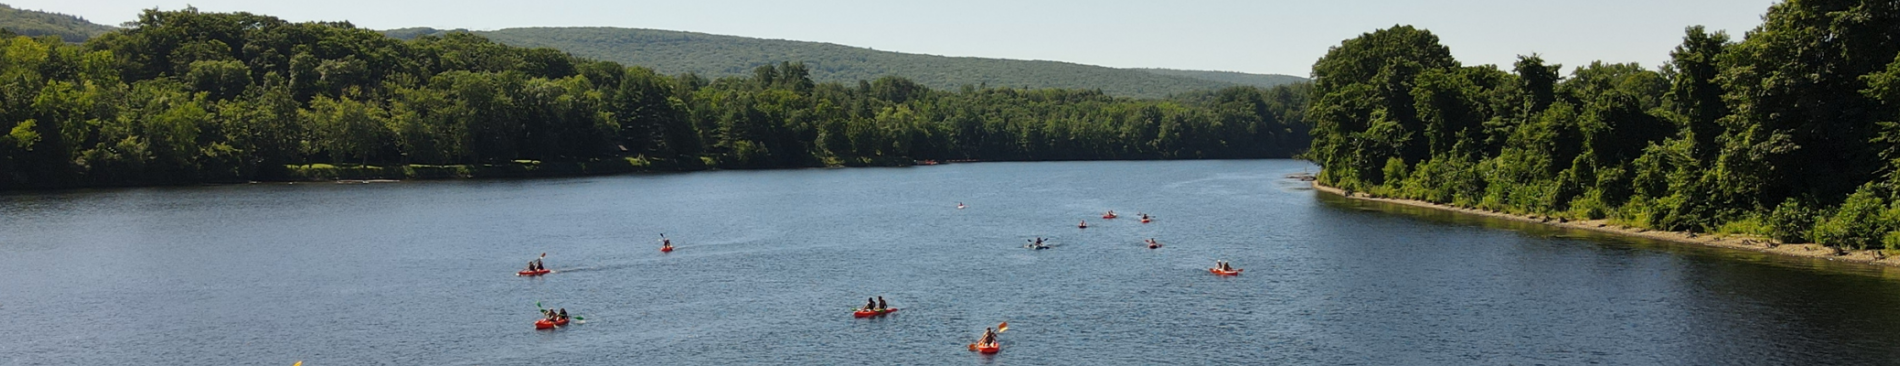 Kayaking along the Connecticut River